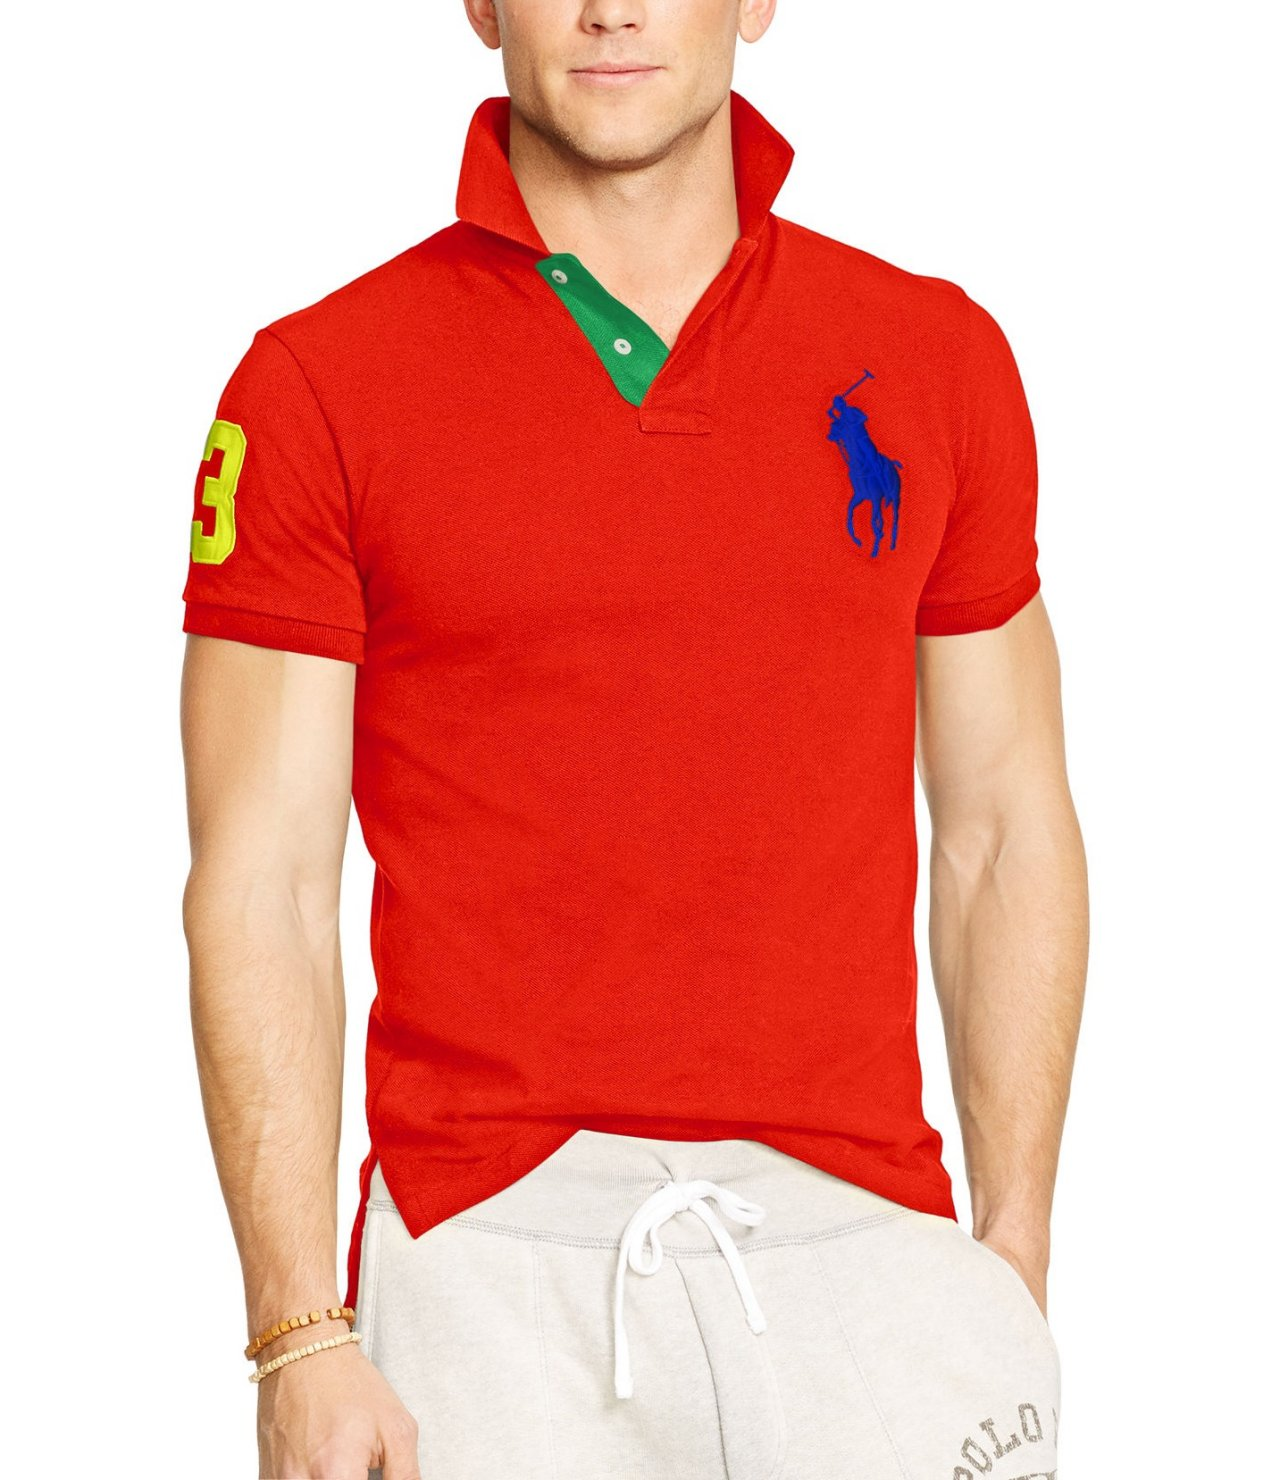 Embroidered Big Pony Polo Logo. Polo Ralph Lauren Mens Custom Slim Fit Big Pony Crest Polo Shirt. by Polo Ralph Lauren. $ - $ $ 60 $ 99 99 Prime. FREE Shipping on eligible orders. Some sizes/colors are Prime eligible. Product Features Big Pony Logo Custom Slim Fit Mesh Material Polo Crest On Left Chest.